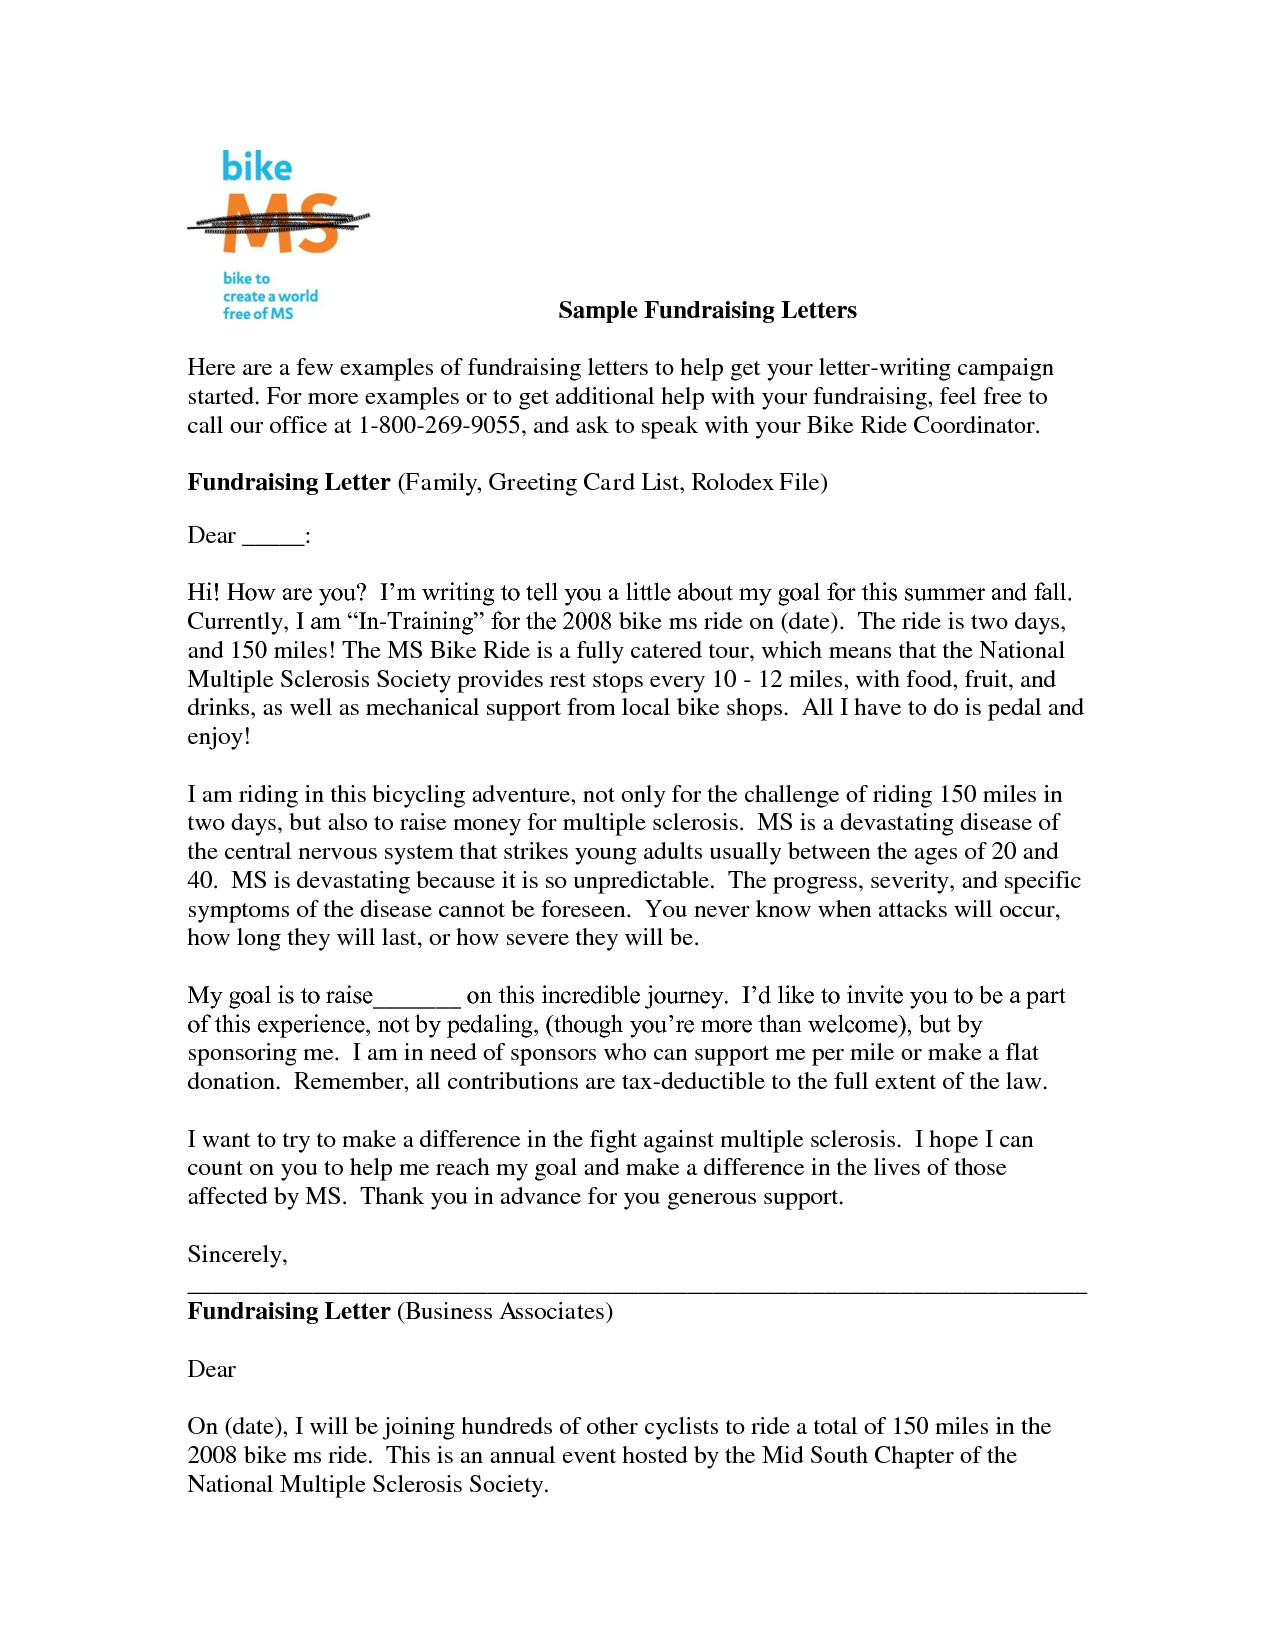 Donation Letter Template for Fundraiser - Fundraising Appeal Letter format Best Sample Fundraising Letter